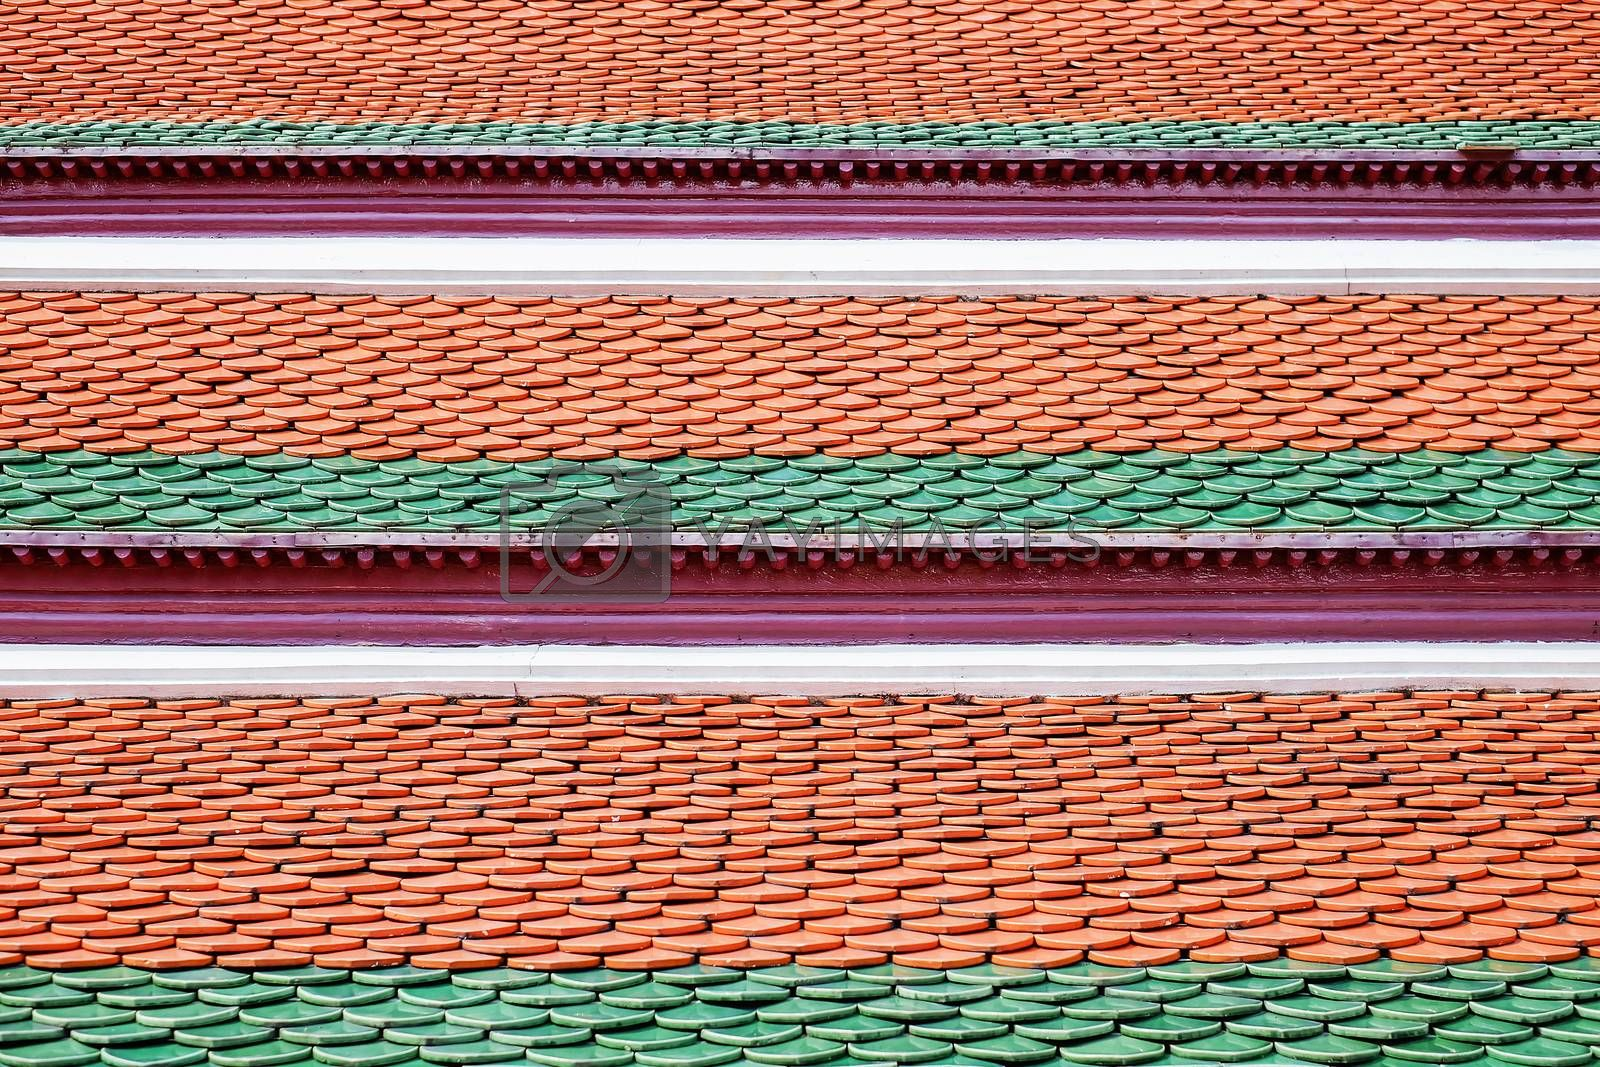 Rooftile pattern yellow green and red